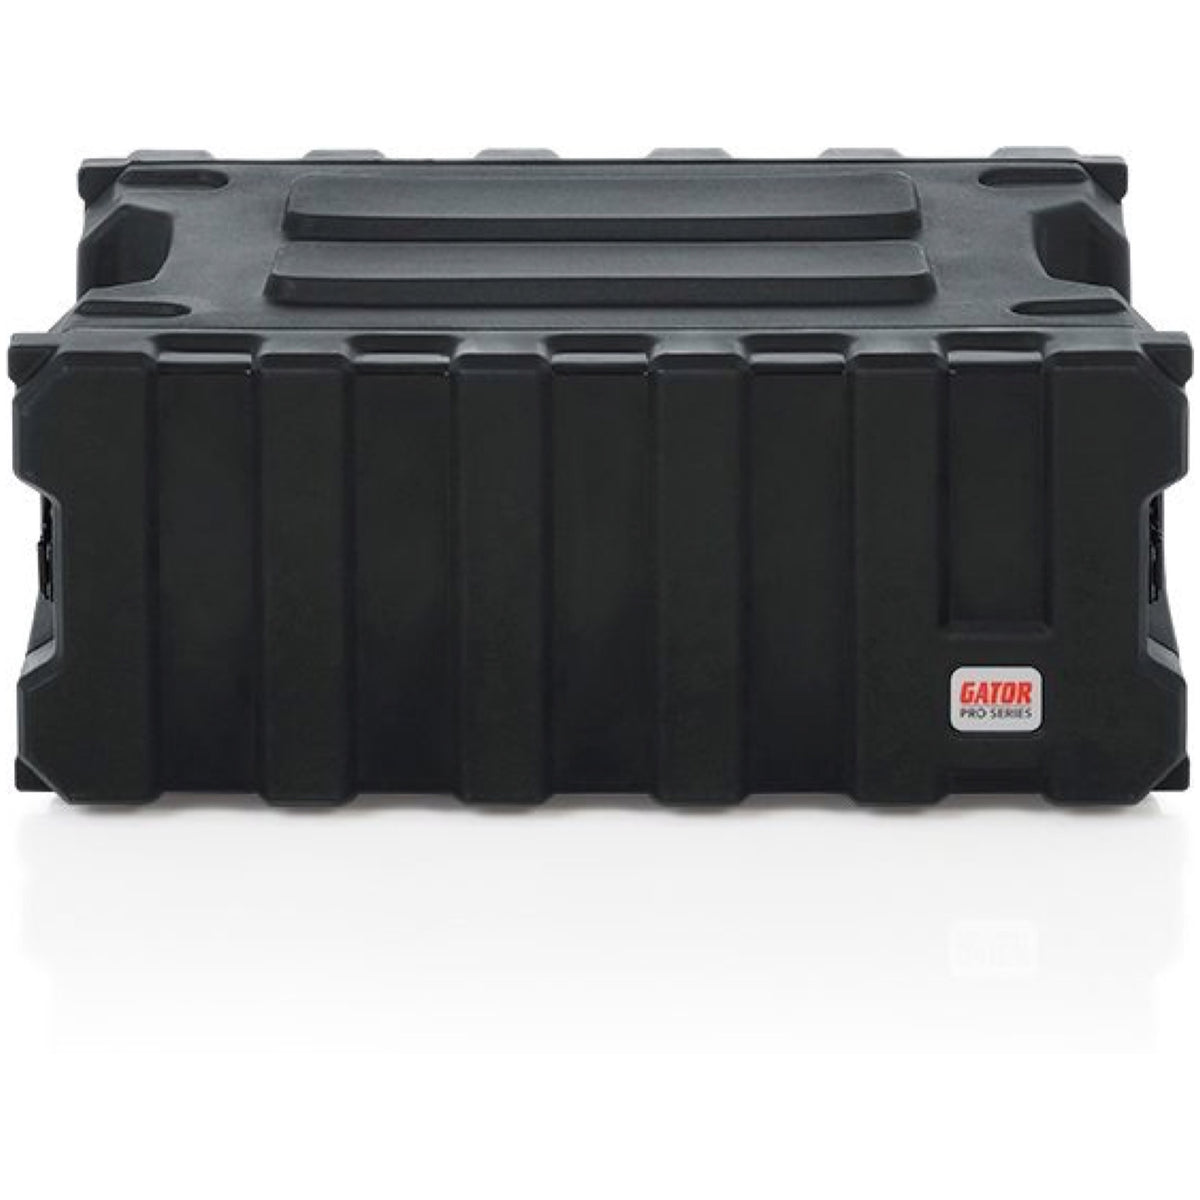 Gator Pro Series Molded Audio Rack Case, G-PRO-4U-13, 4-Space, 13 Inch